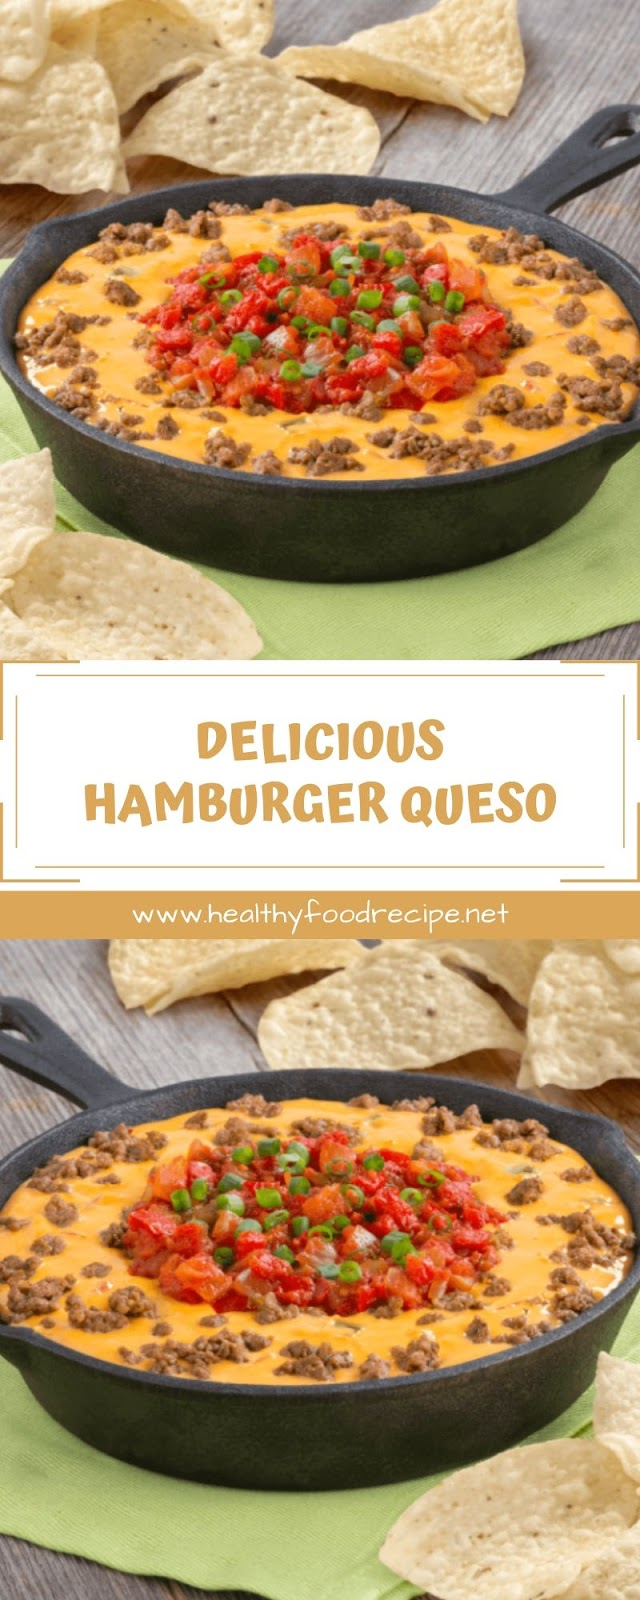 DELICIOUS HAMBURGER QUESO